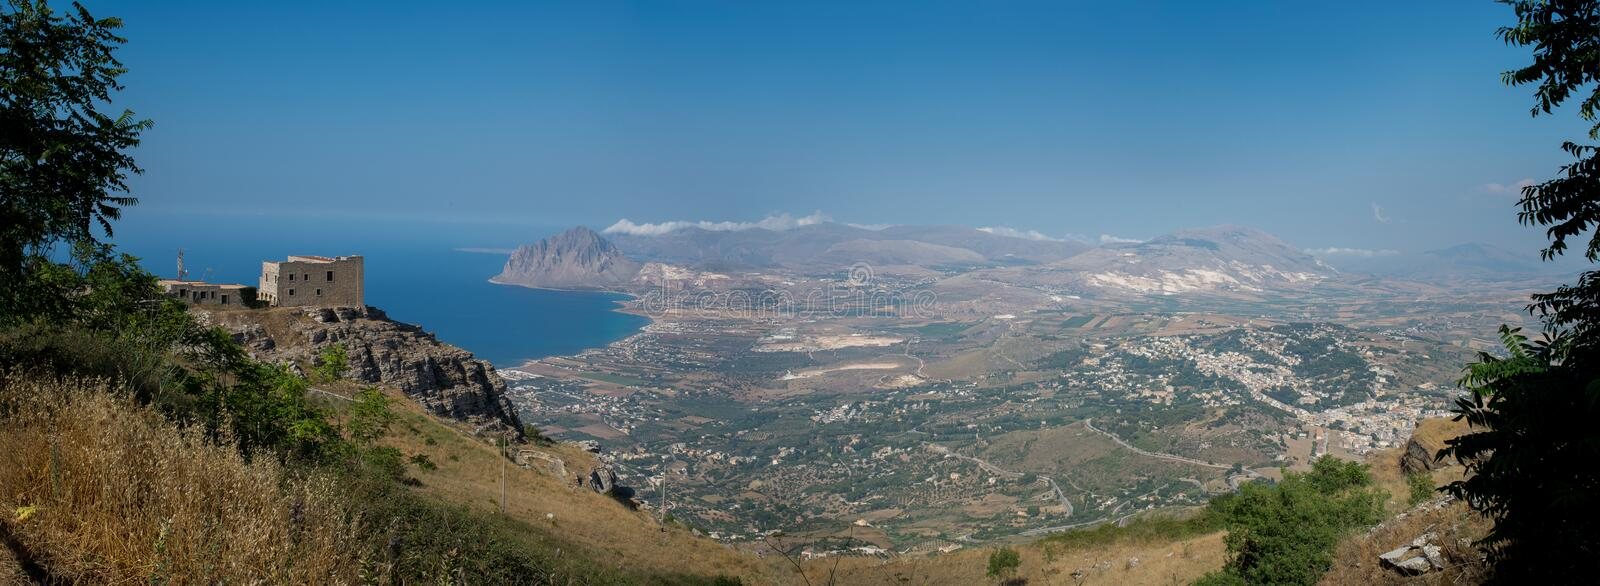 Gulf of Bonagia and Monte Cofano. Trapani, Sicily, Italy. Gulf of Bonagia and Monte Cofano nature reserve in the coast of province of Trapani. Panoramic royalty free stock images